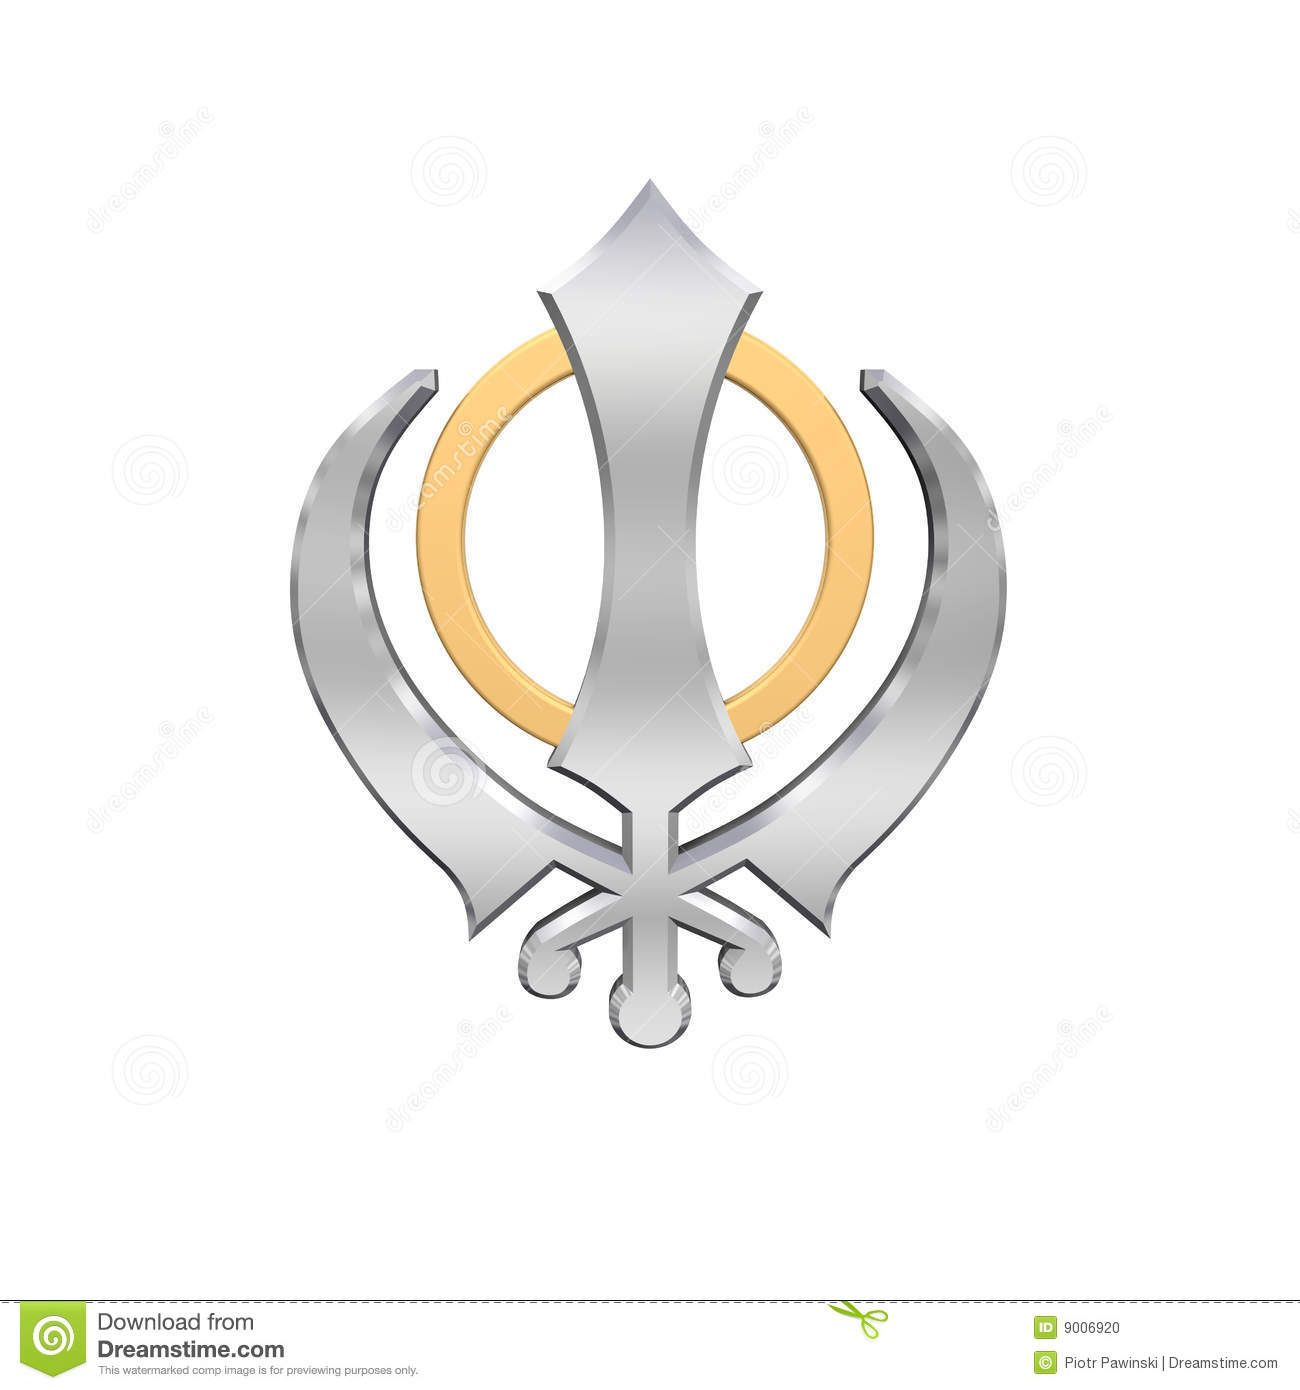 Sikh Symbol Stock Photos, Images, & Pictures – (774 Images ...